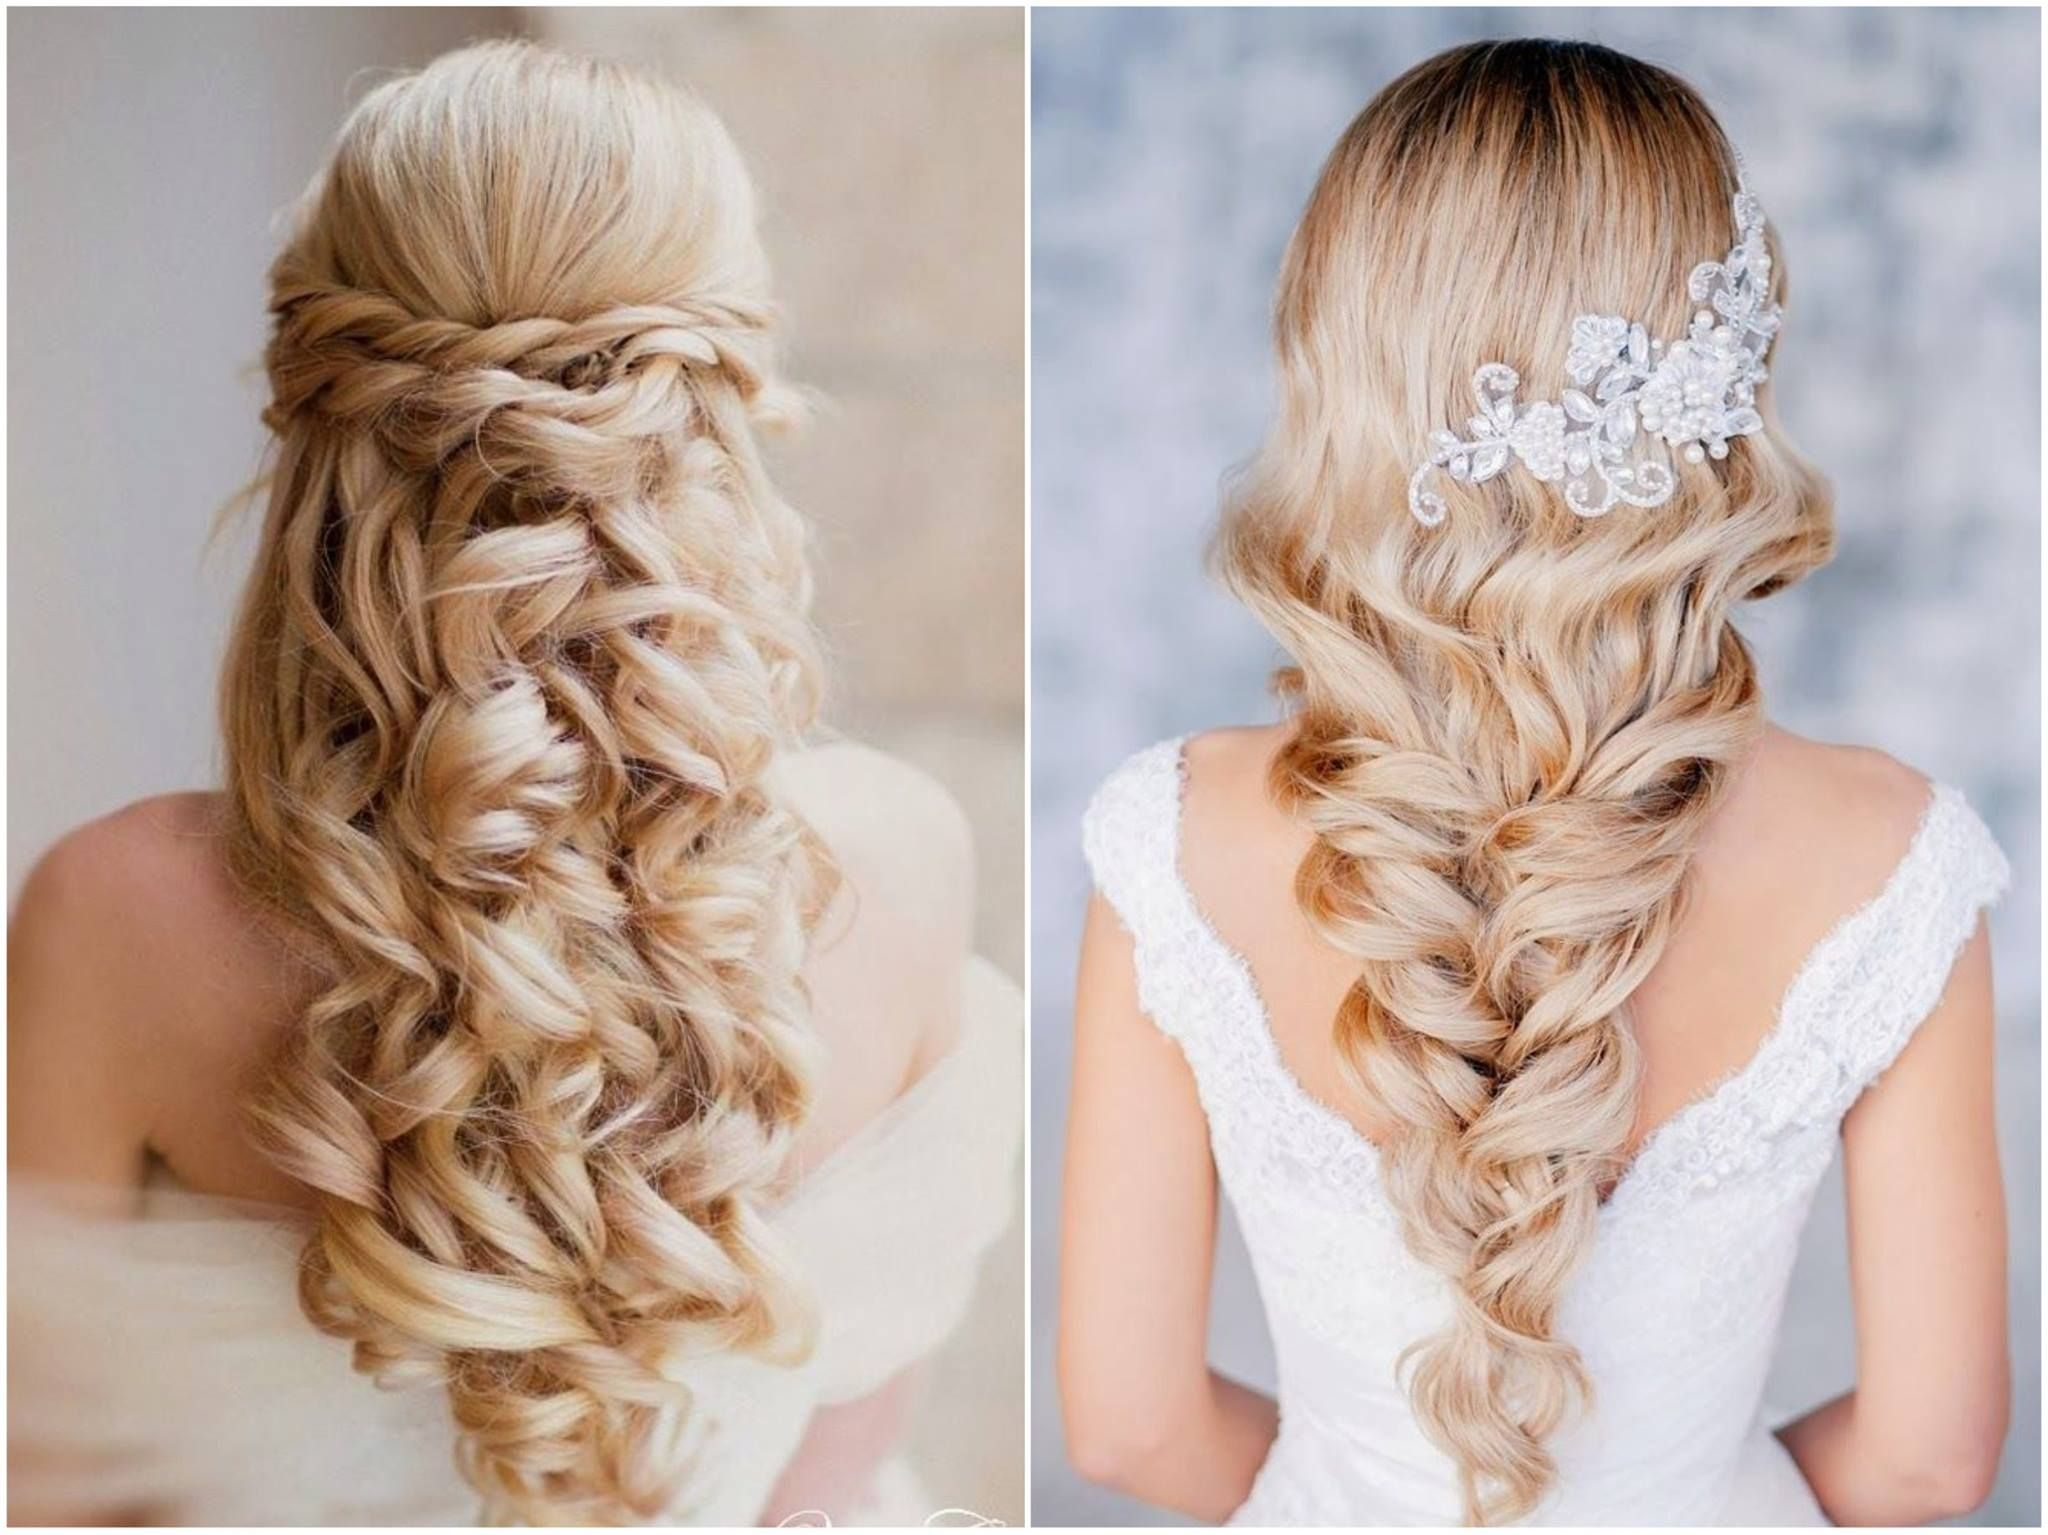 Gorgeous Leave Your Hair Down For The Big Day Wedding Evening Hairstyles Mom Hairstyles Diy Wedding Hair